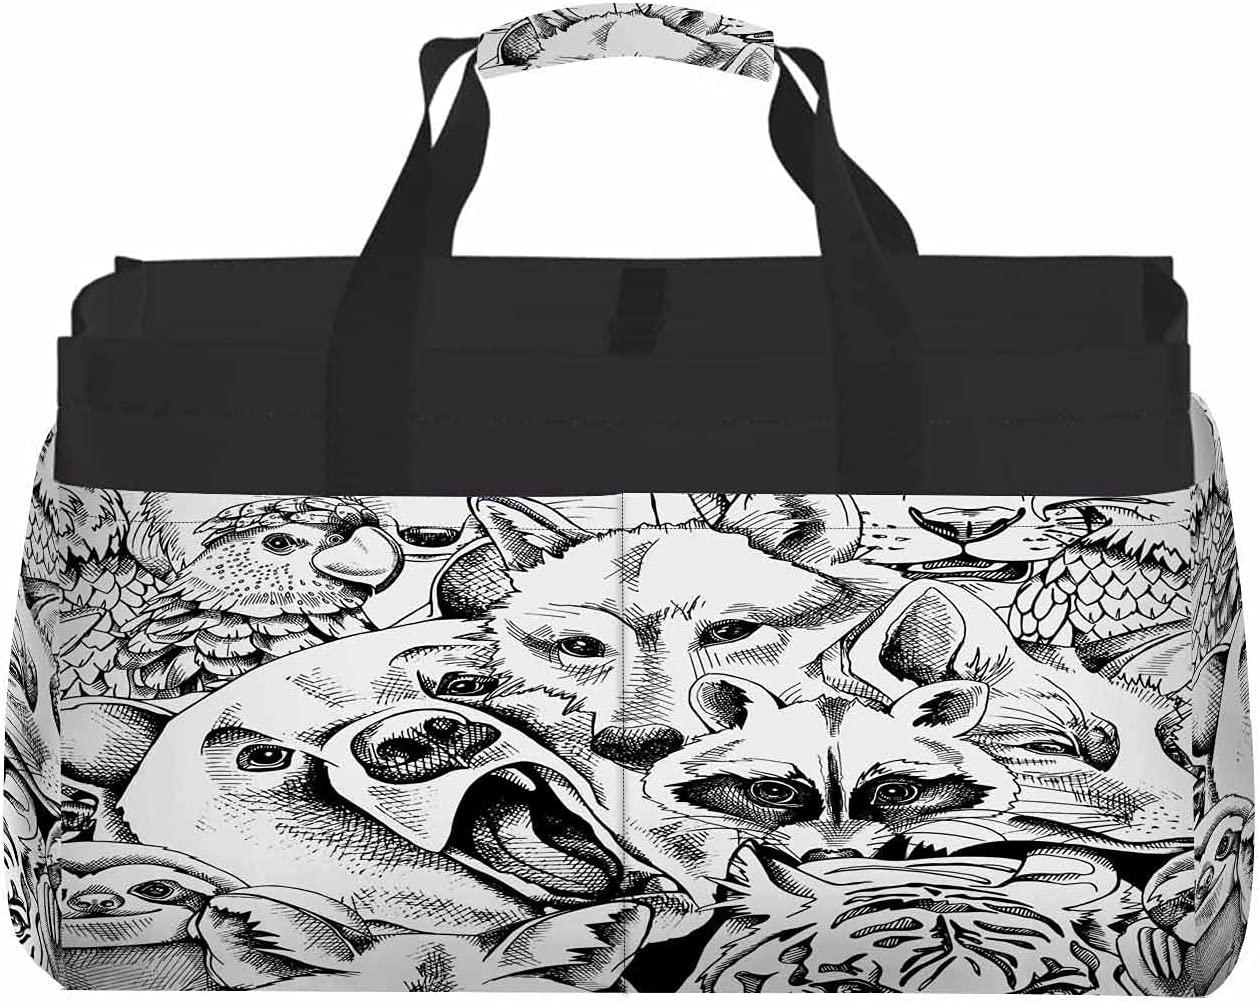 Nicokee Large Capacity Portable Storage Tiger Super beauty product restock quality top! Wolf Fox Bear Bag free shipping